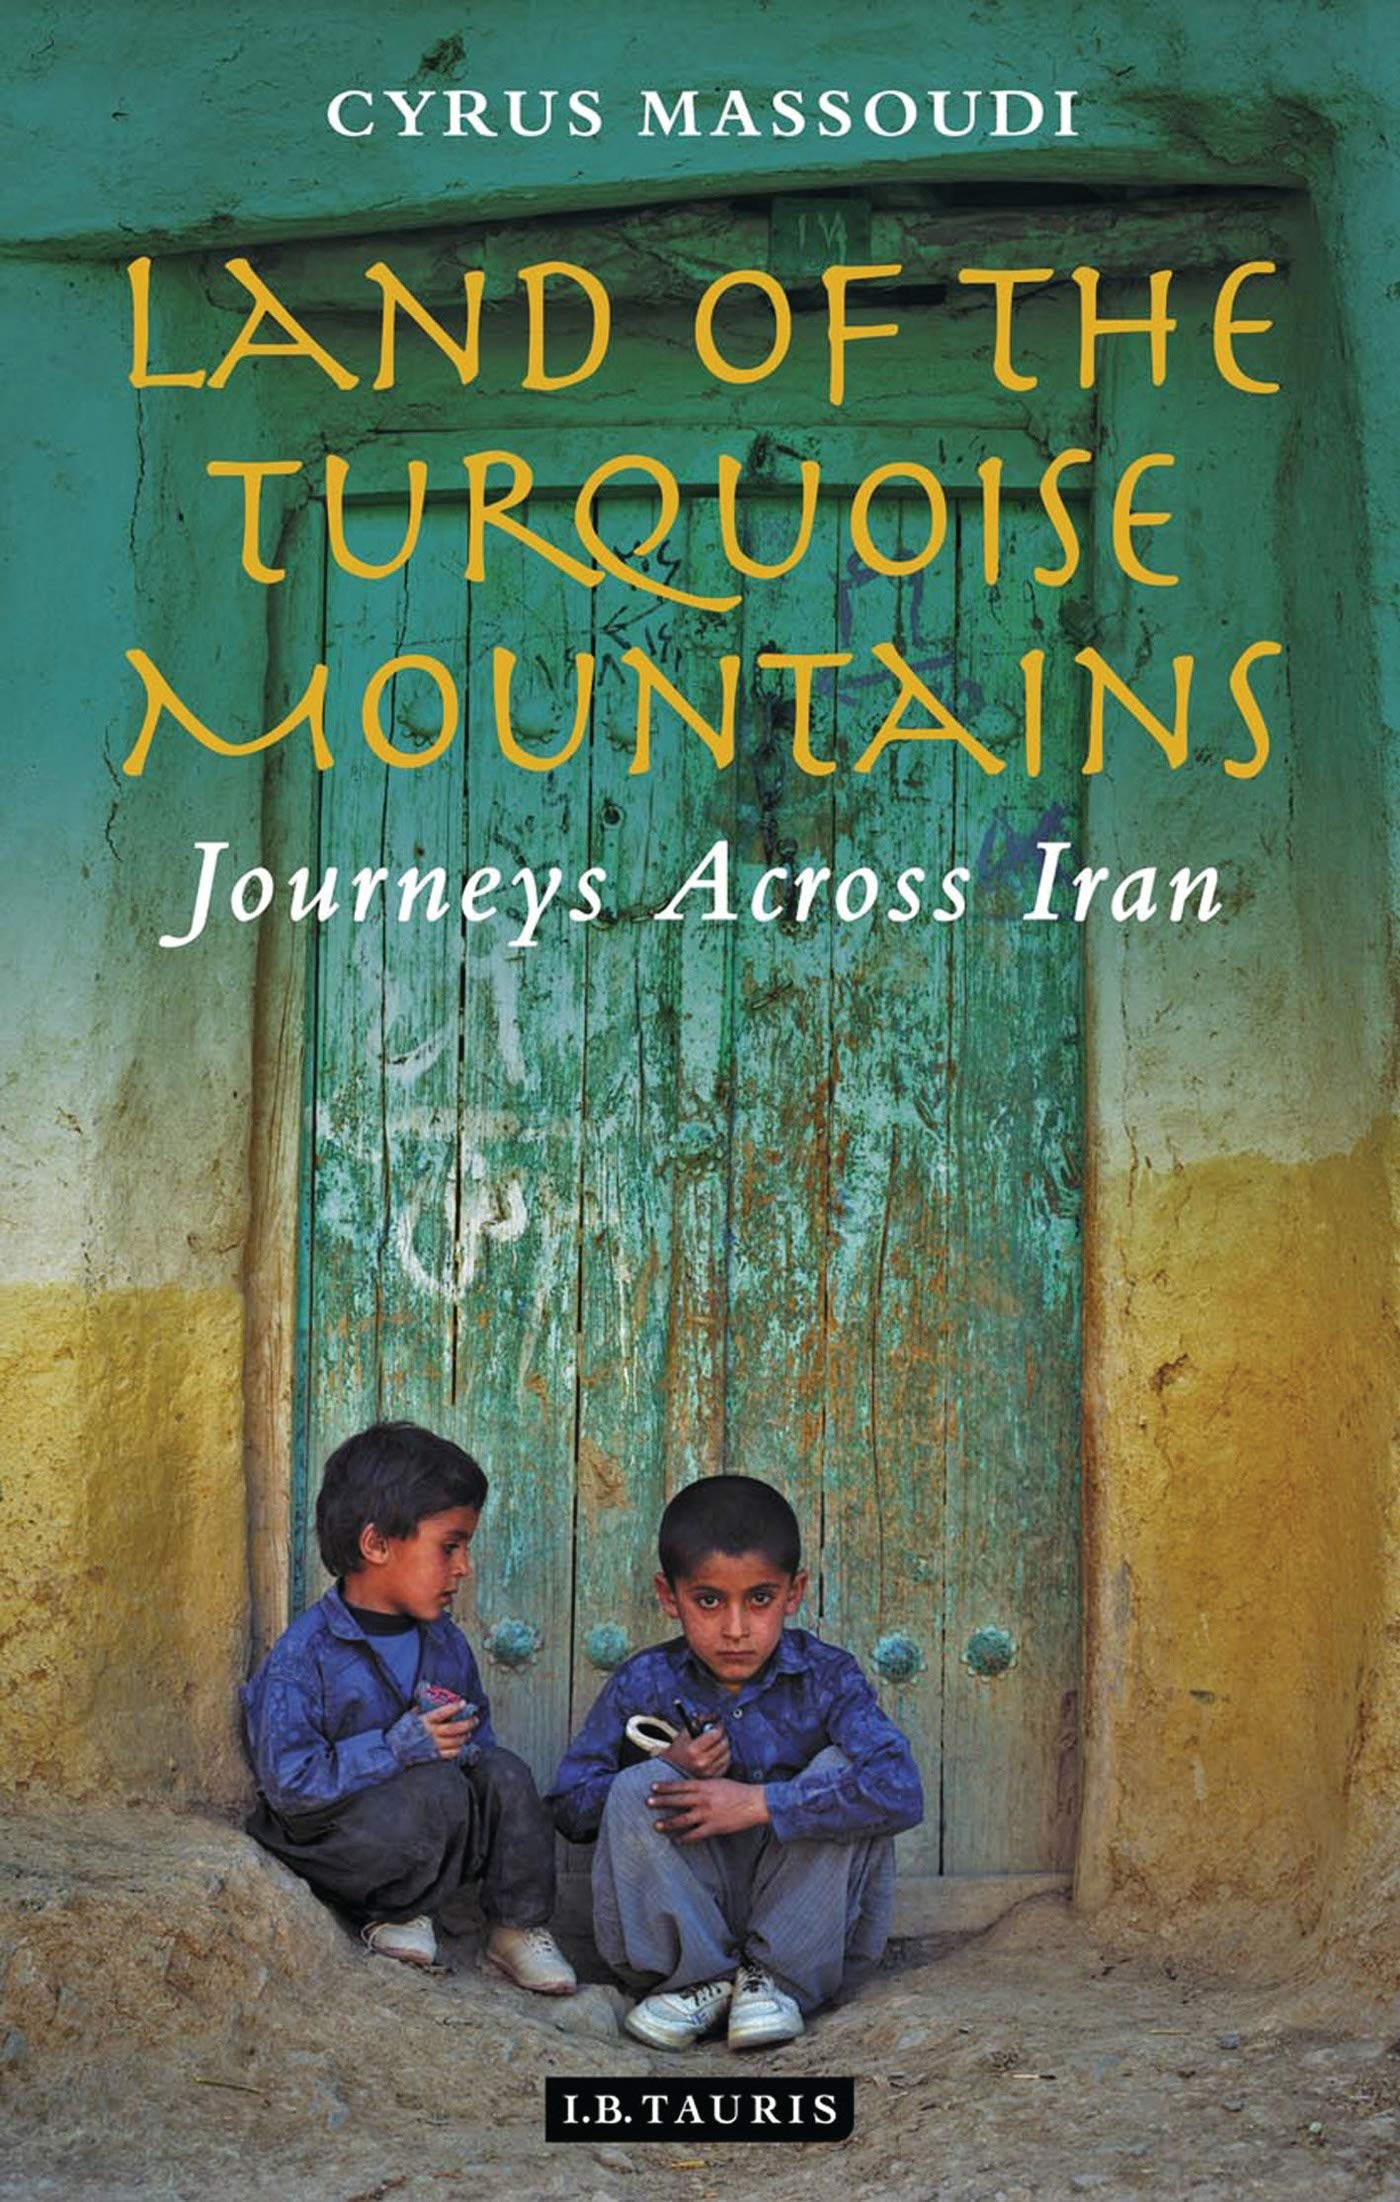 Image OfLand Of The Turquoise Mountains: Journeys Across Iran